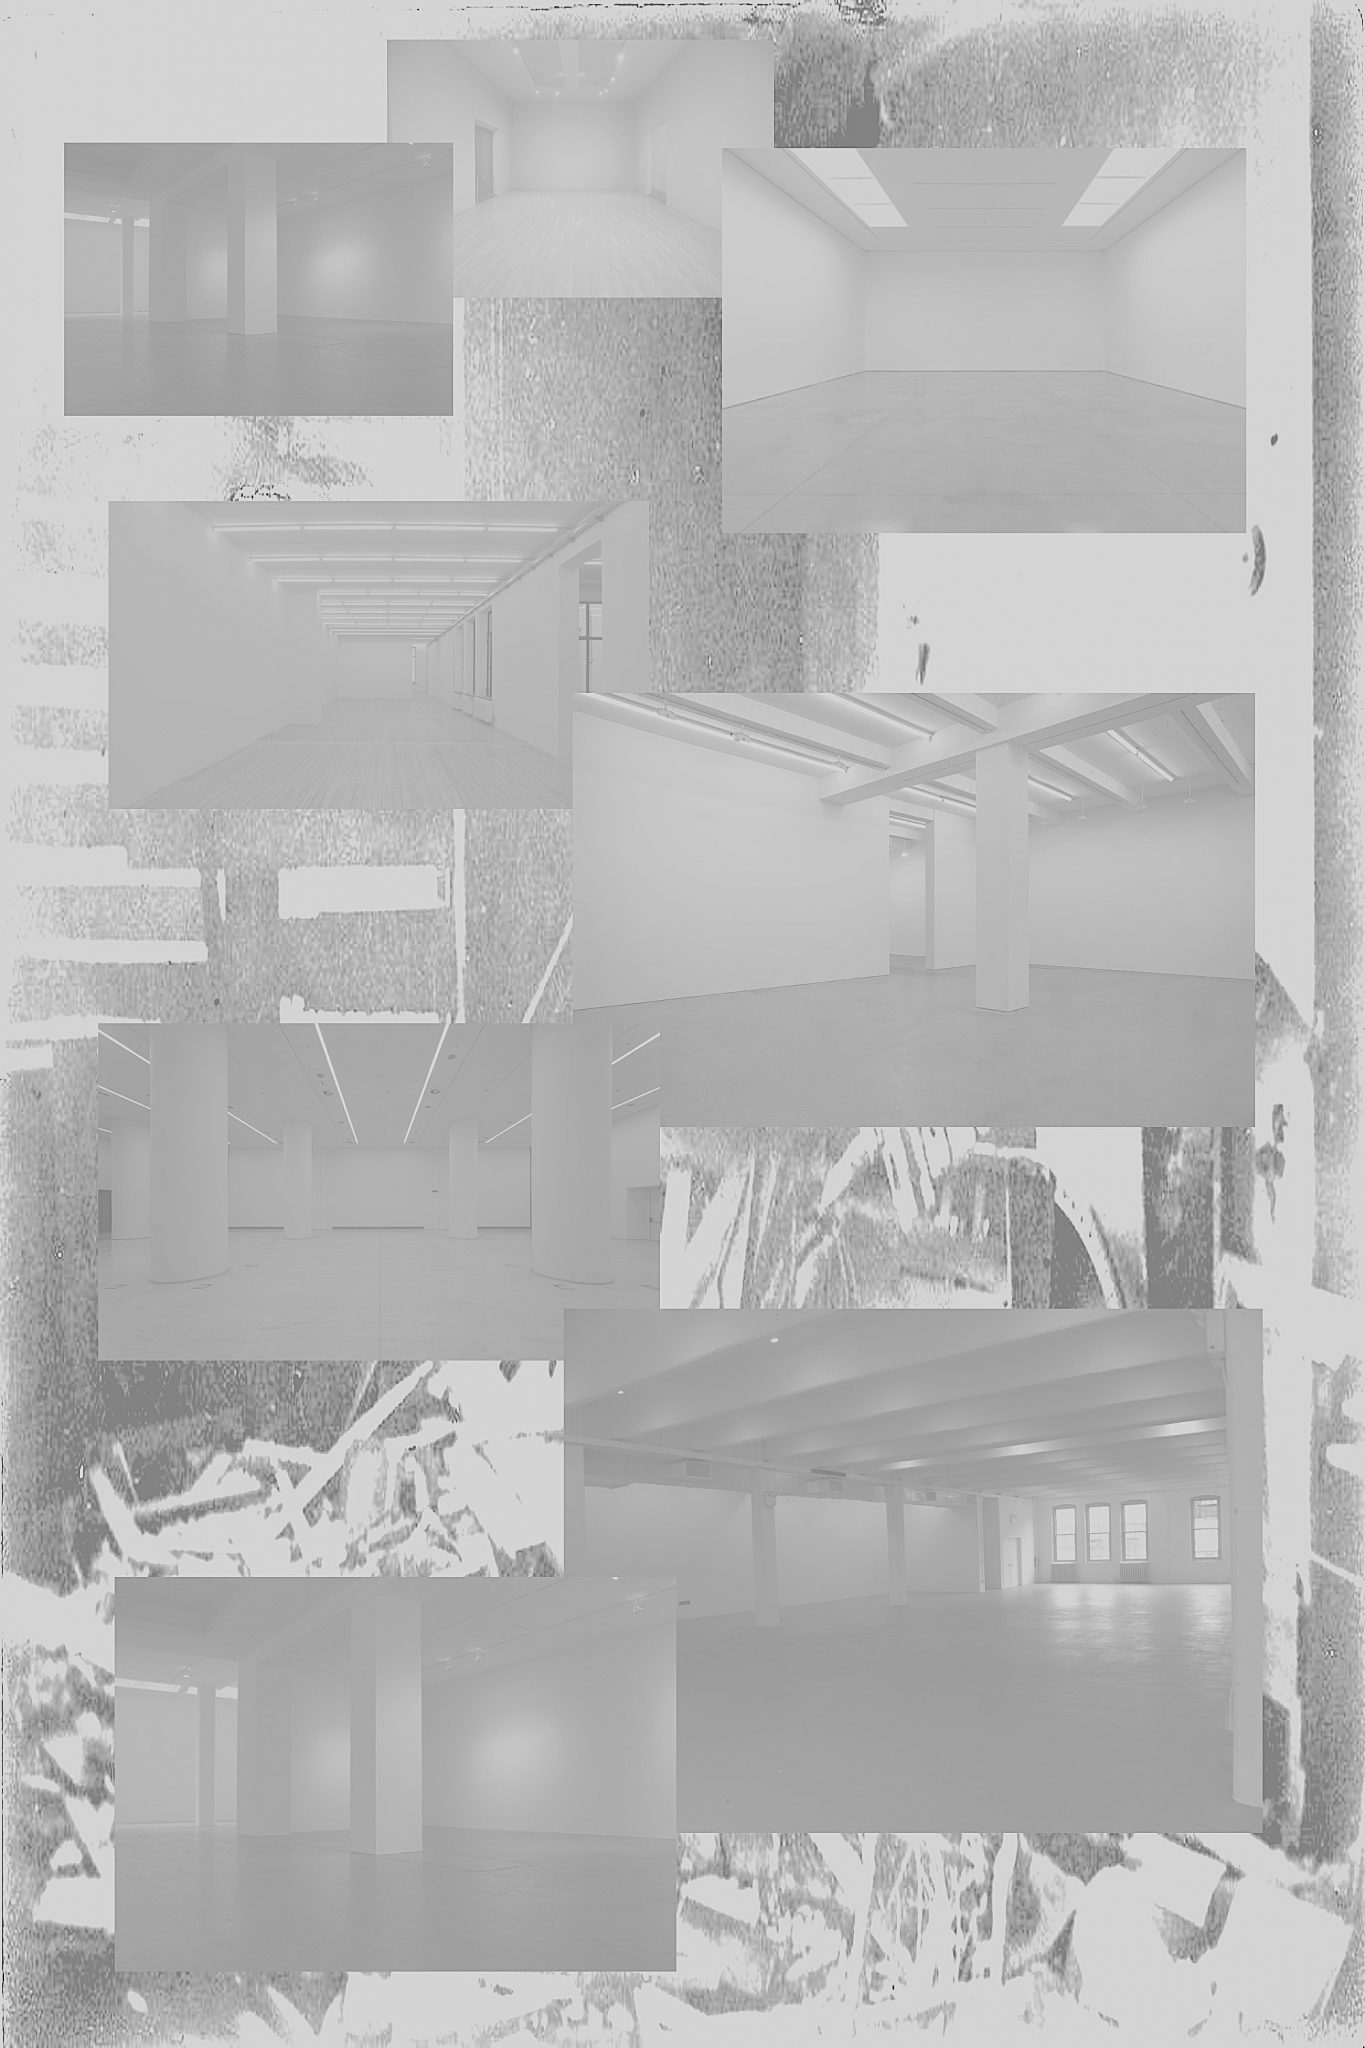 Throw Your Art in a Barrel and Roll it: On BCC Gallery 𝑏𝑦 M.A. Mamourian